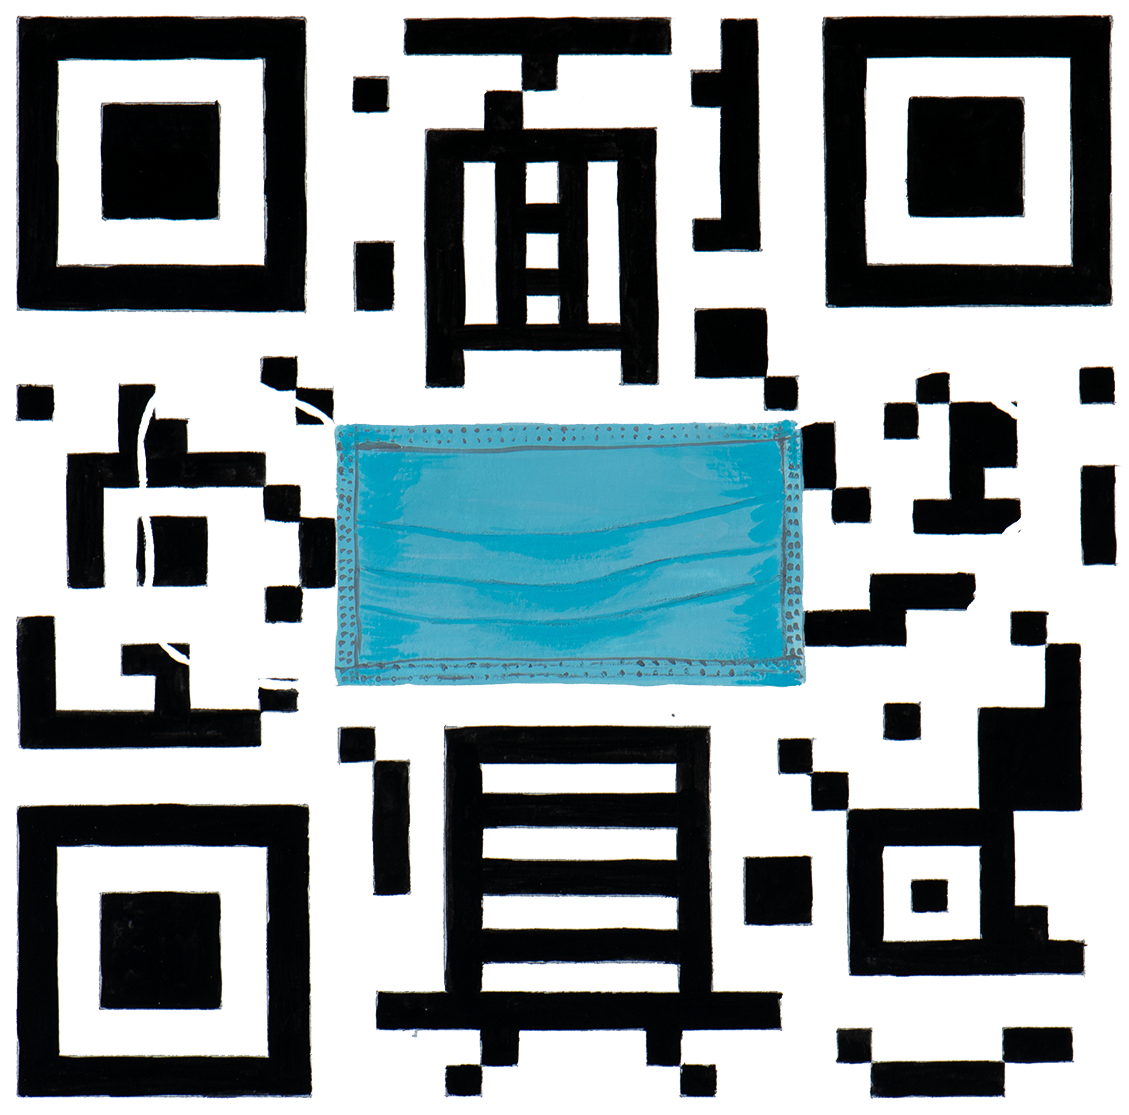 QR Code illustration with safety mask